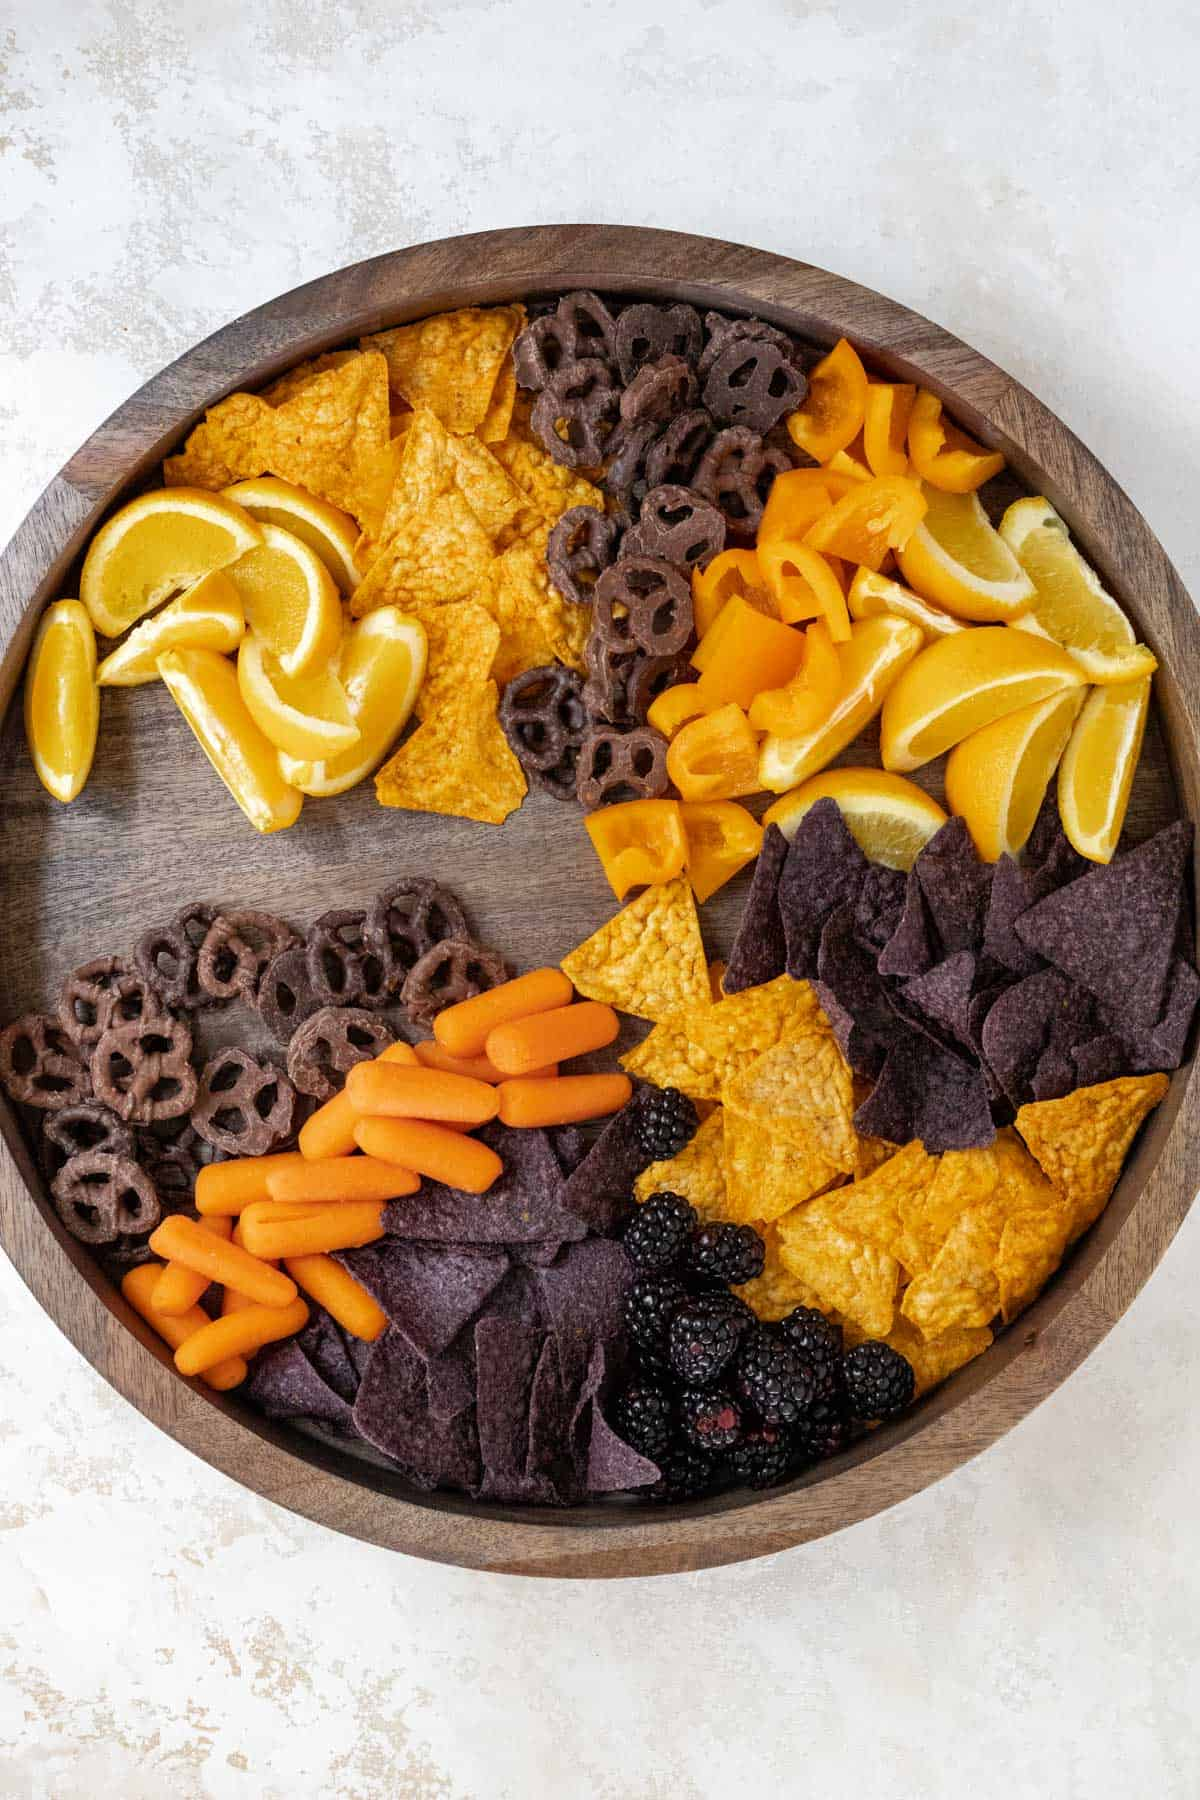 Oranges, chips, orange bell peppers, and chocolate covered pretzels, carrots, and blackberries arranged on a wooden board.